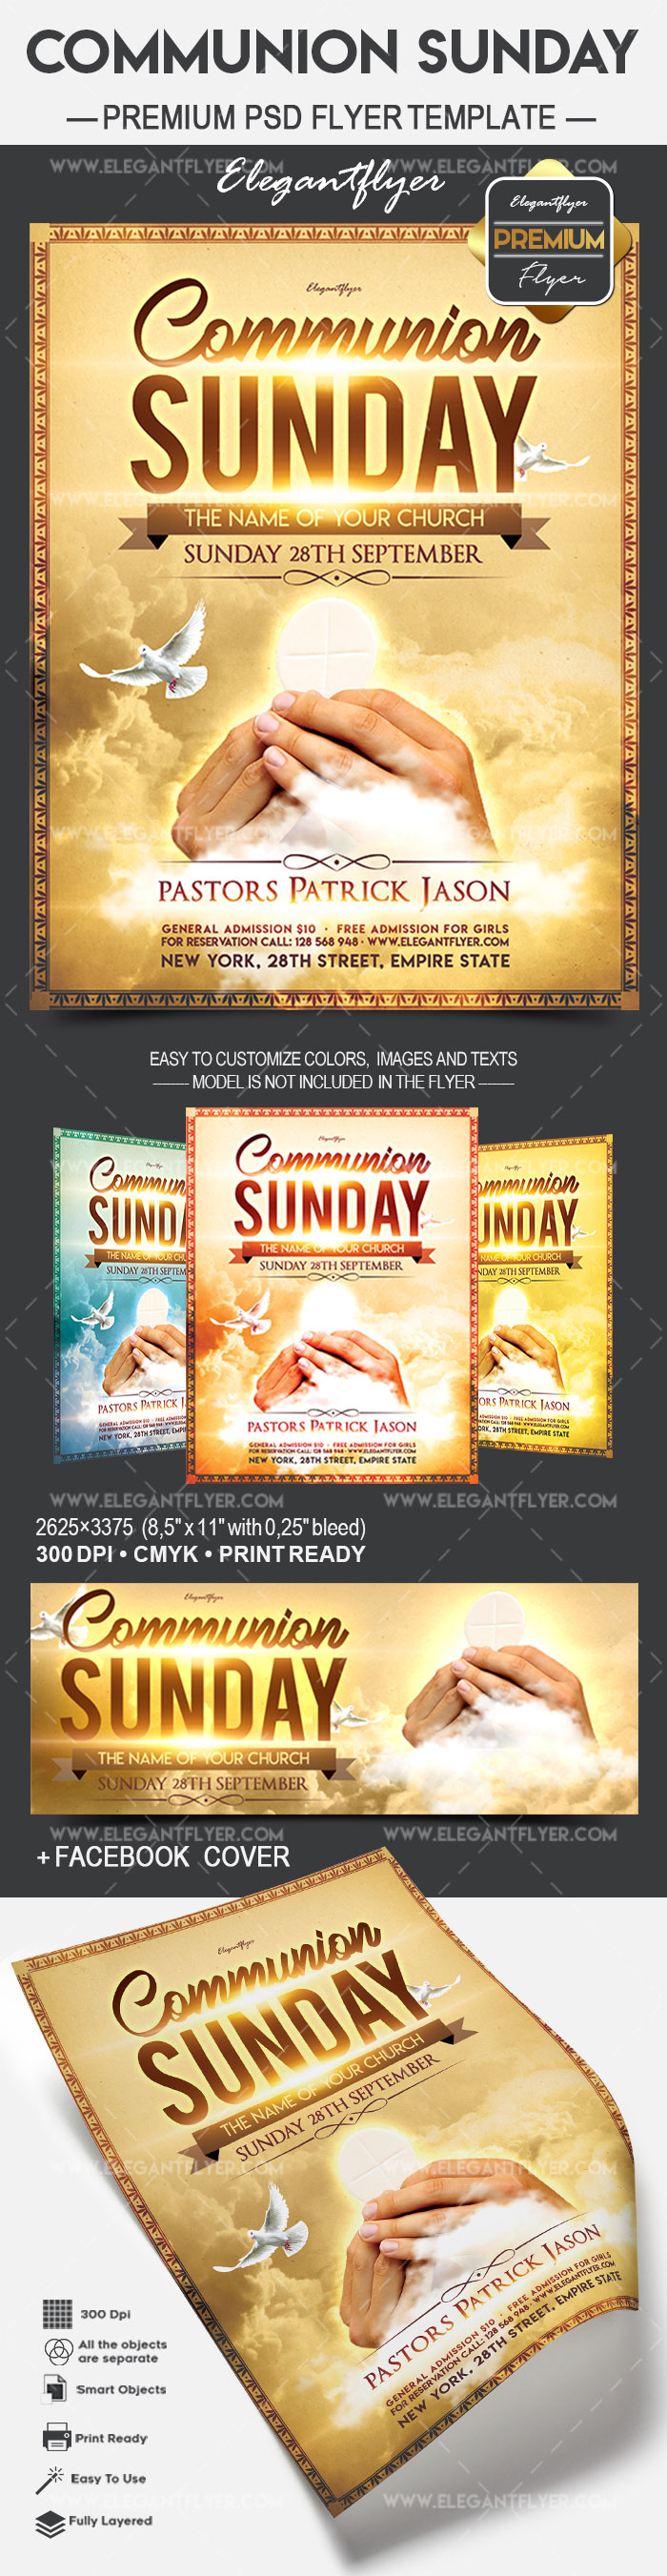 communion sunday  u2013 flyer psd template  u2013 by elegantflyer